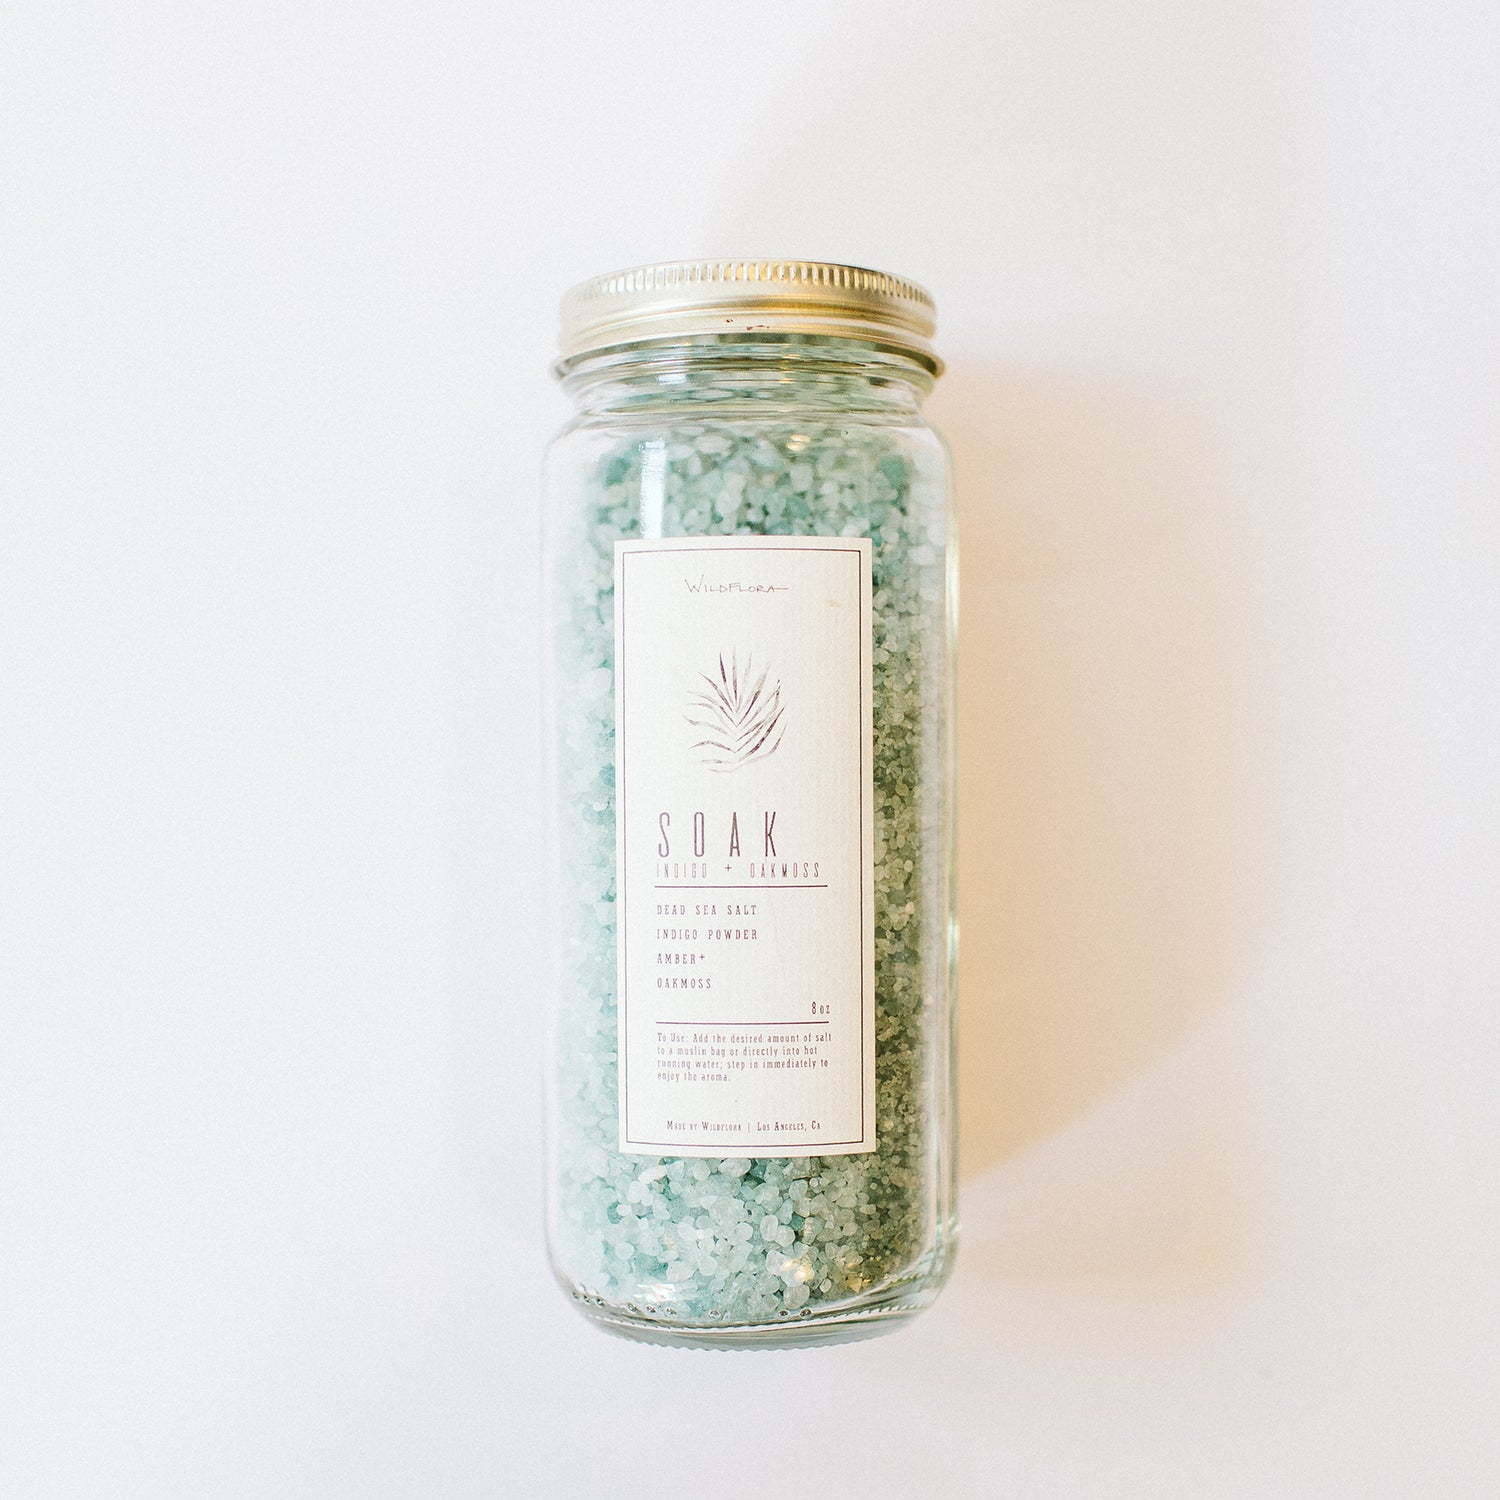 WildFlora Bath Salts